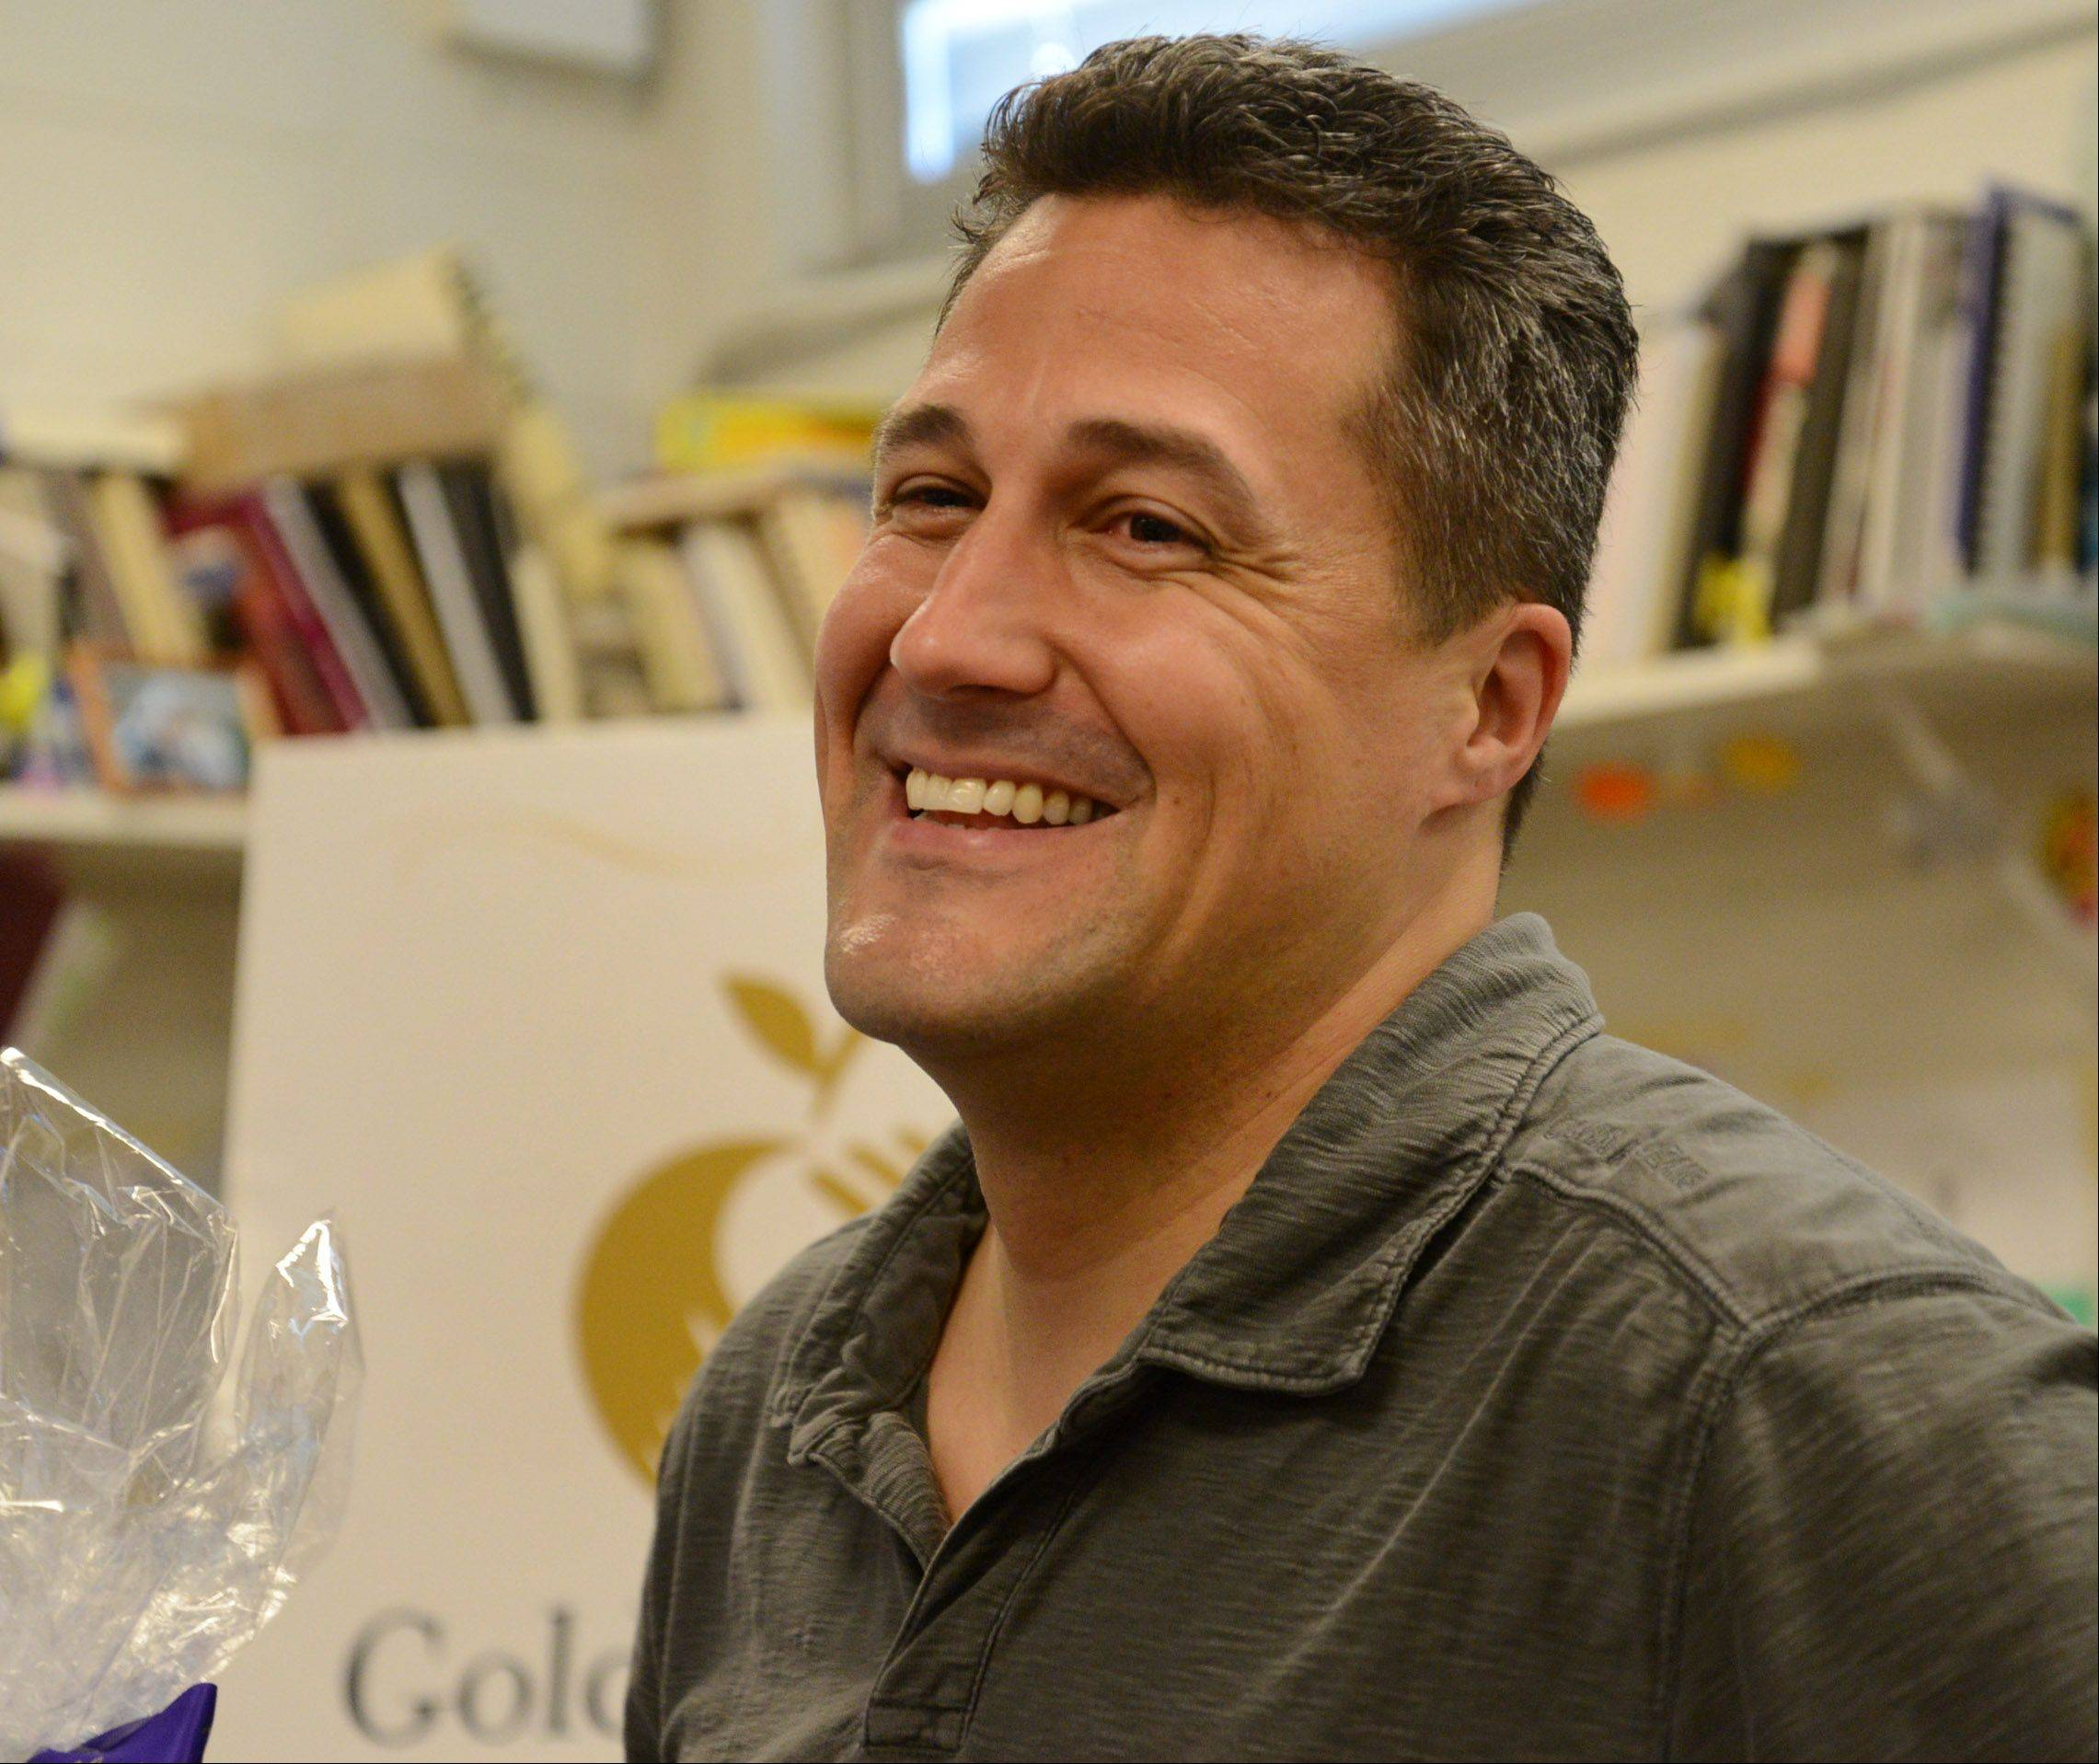 Gregory Regalado, who teaches art, photography and advanced digital imaging at Maine West High School in Des Plaines, was surprised with the news Wednesday that's he's been chosen for the coveted Golden Apple Award for Excellence in Teaching. Only 10 teachers statewide receive the honor each year.